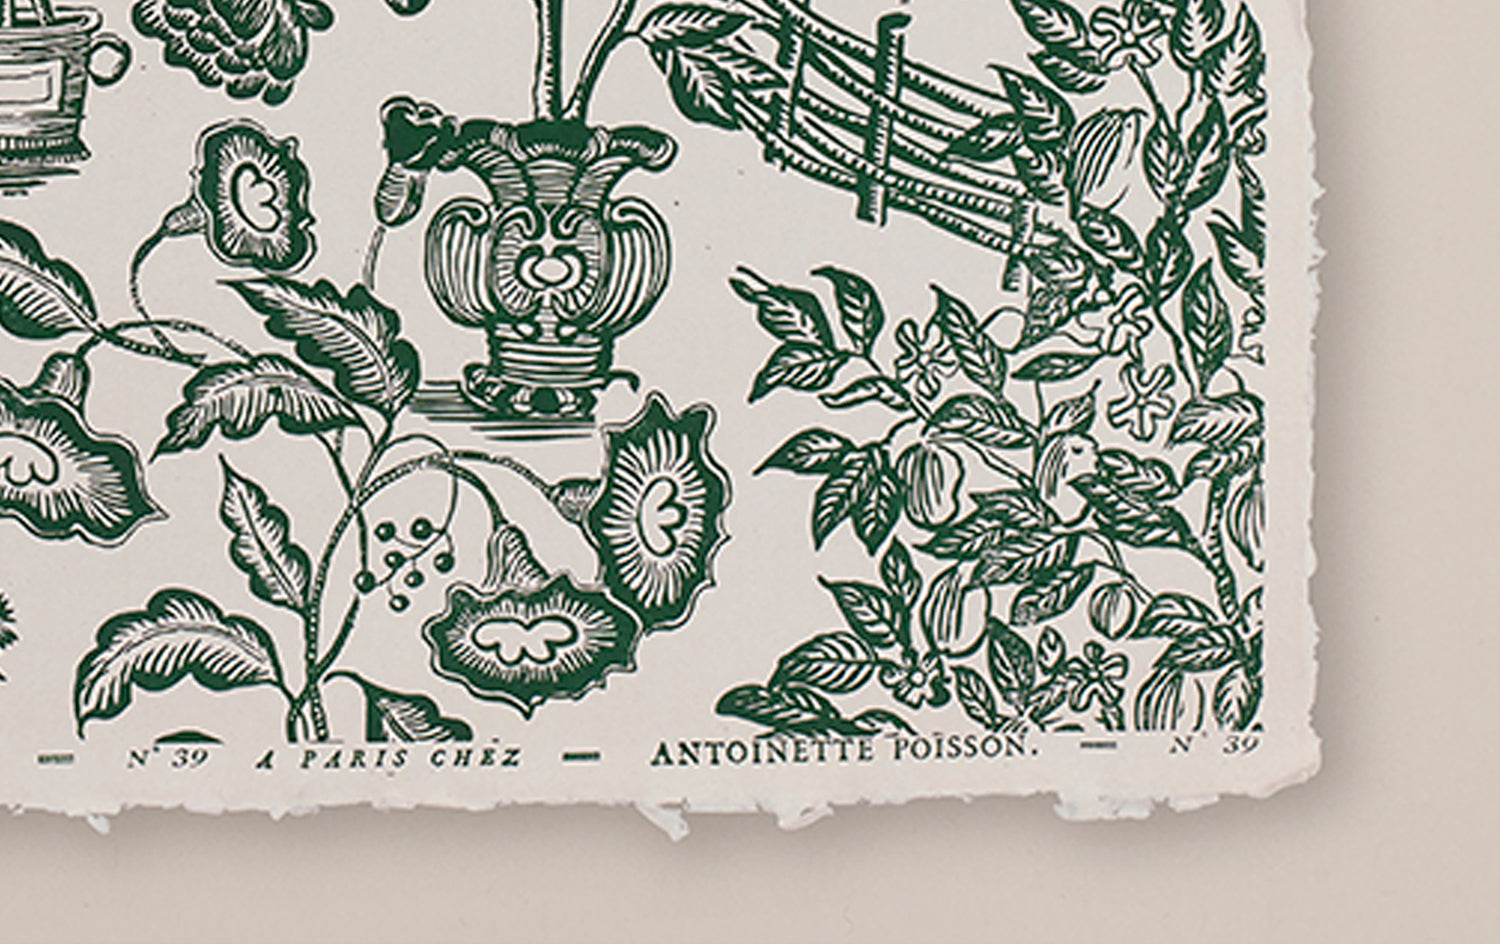 Antoinette Poisson Papier Dominoté No 39, Jardin, Green